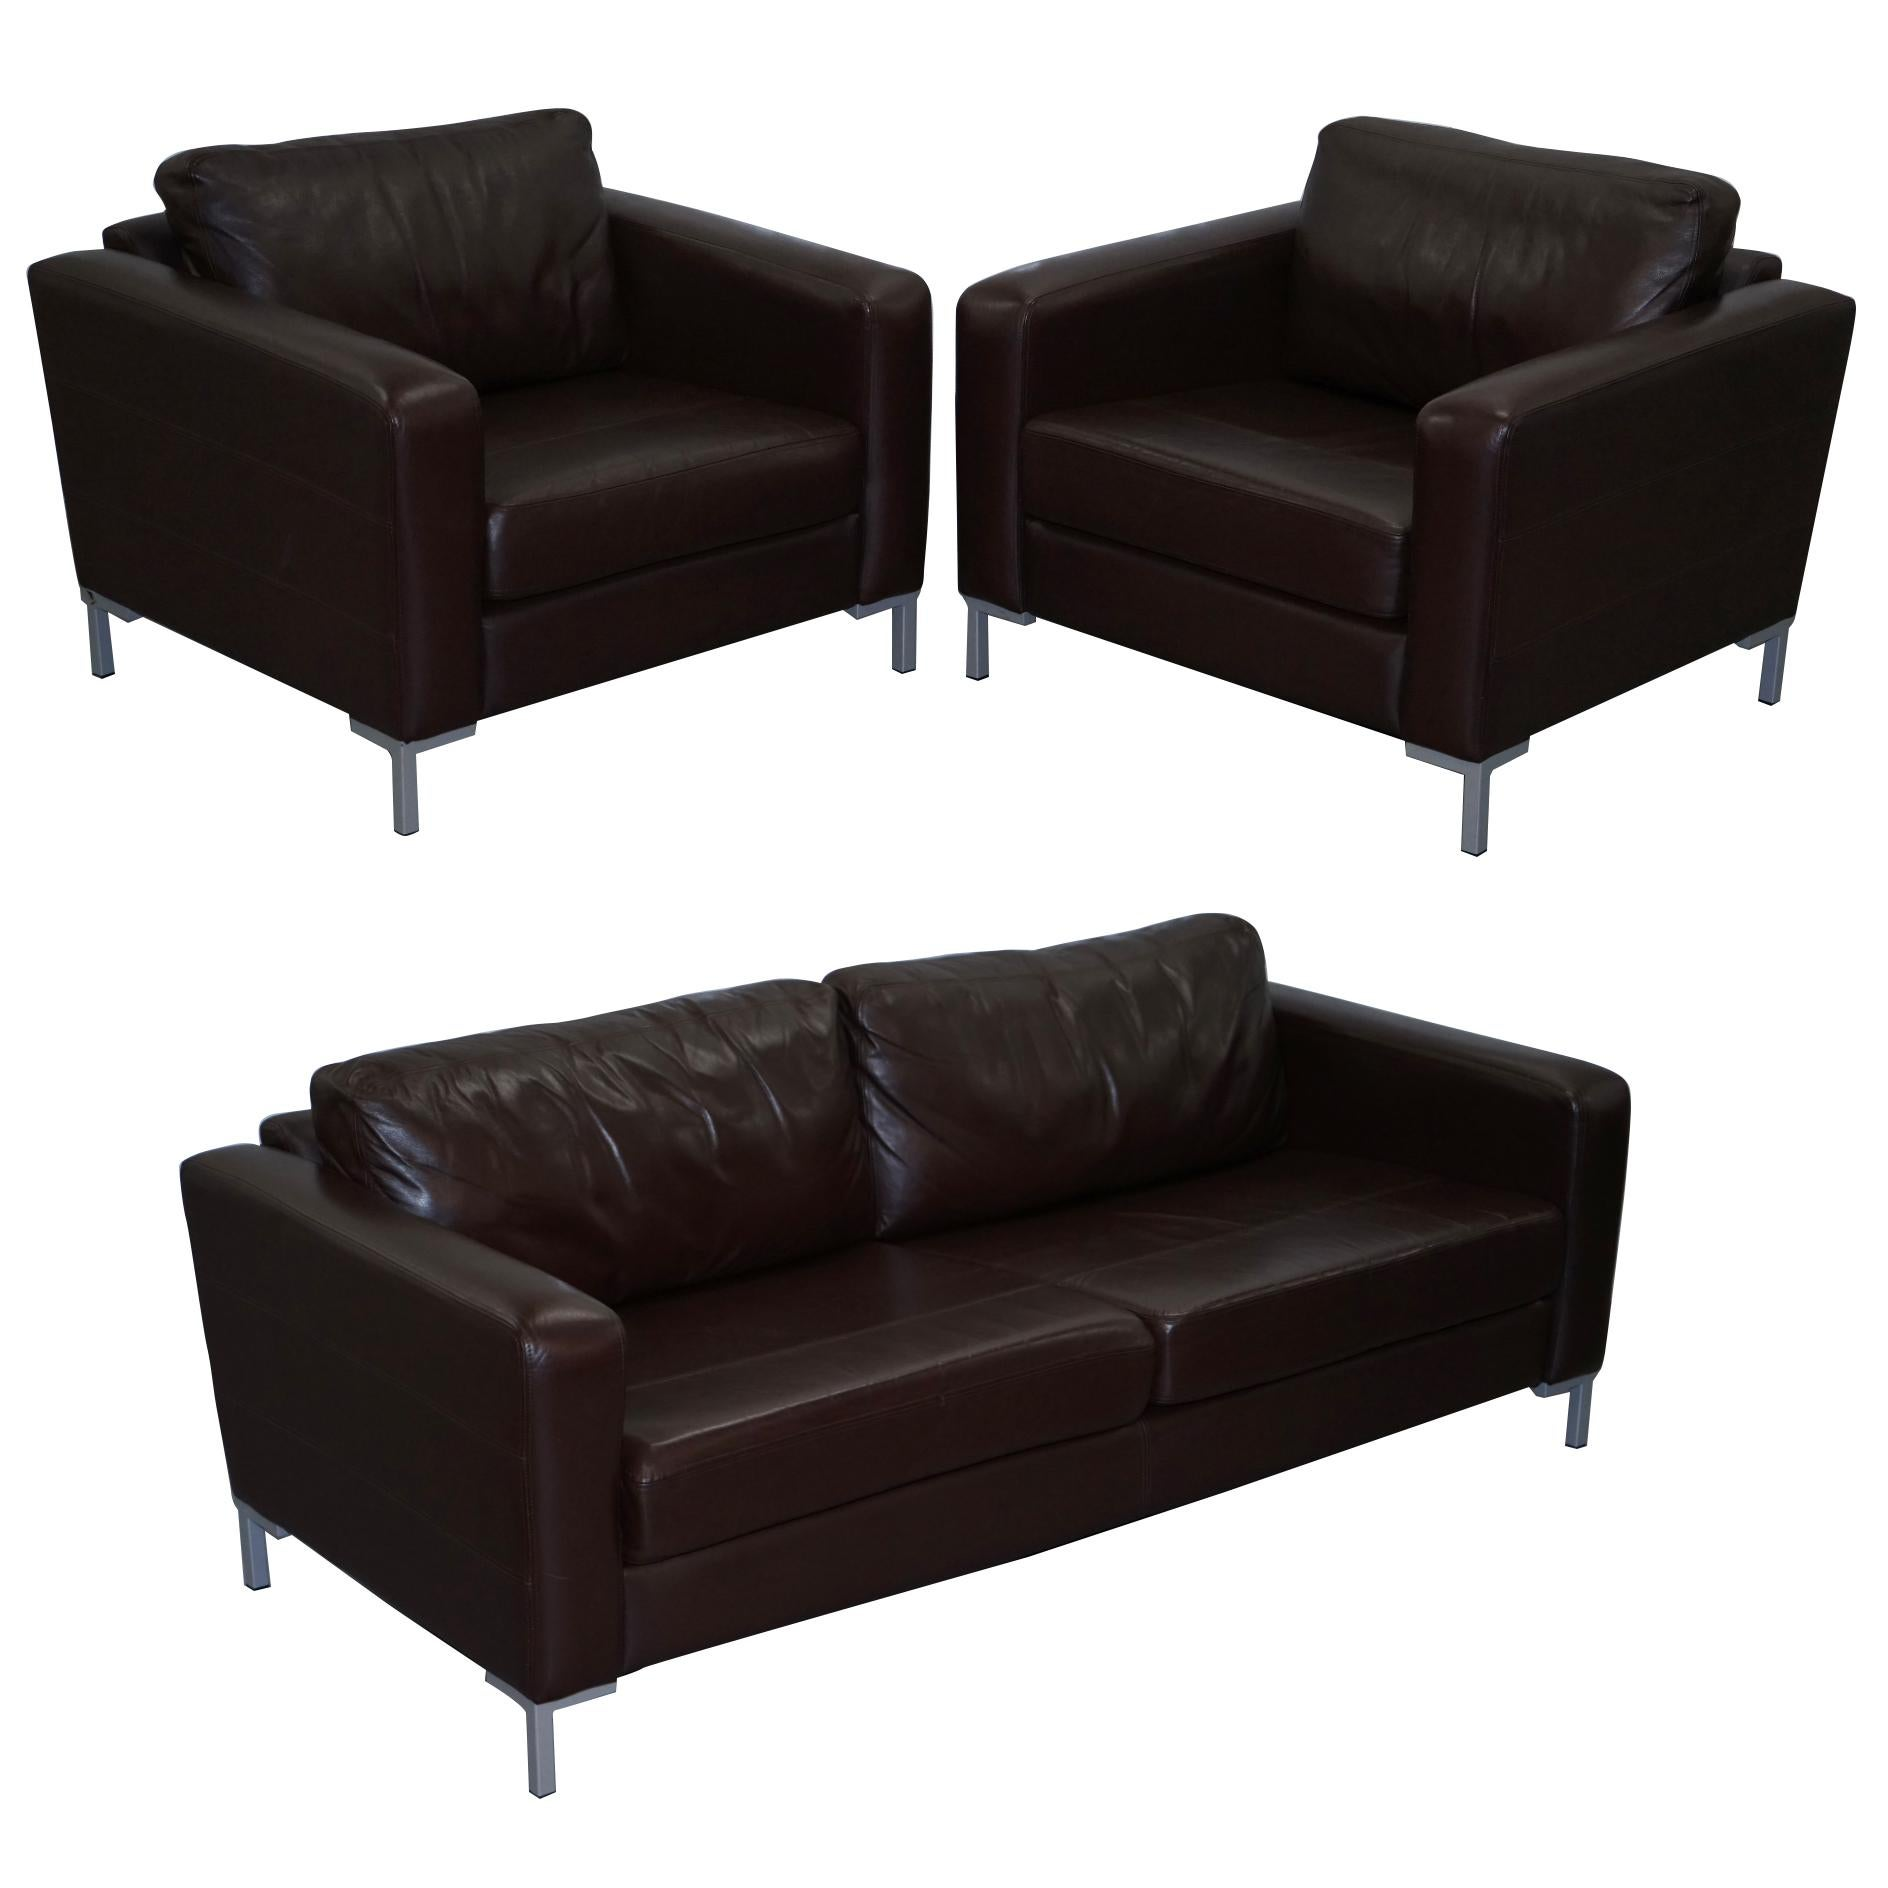 John Lewis Sofa Upholstery John Lewis Siren Aniline Brown Leather Suite Pair Armchairs Three Seat Sofa